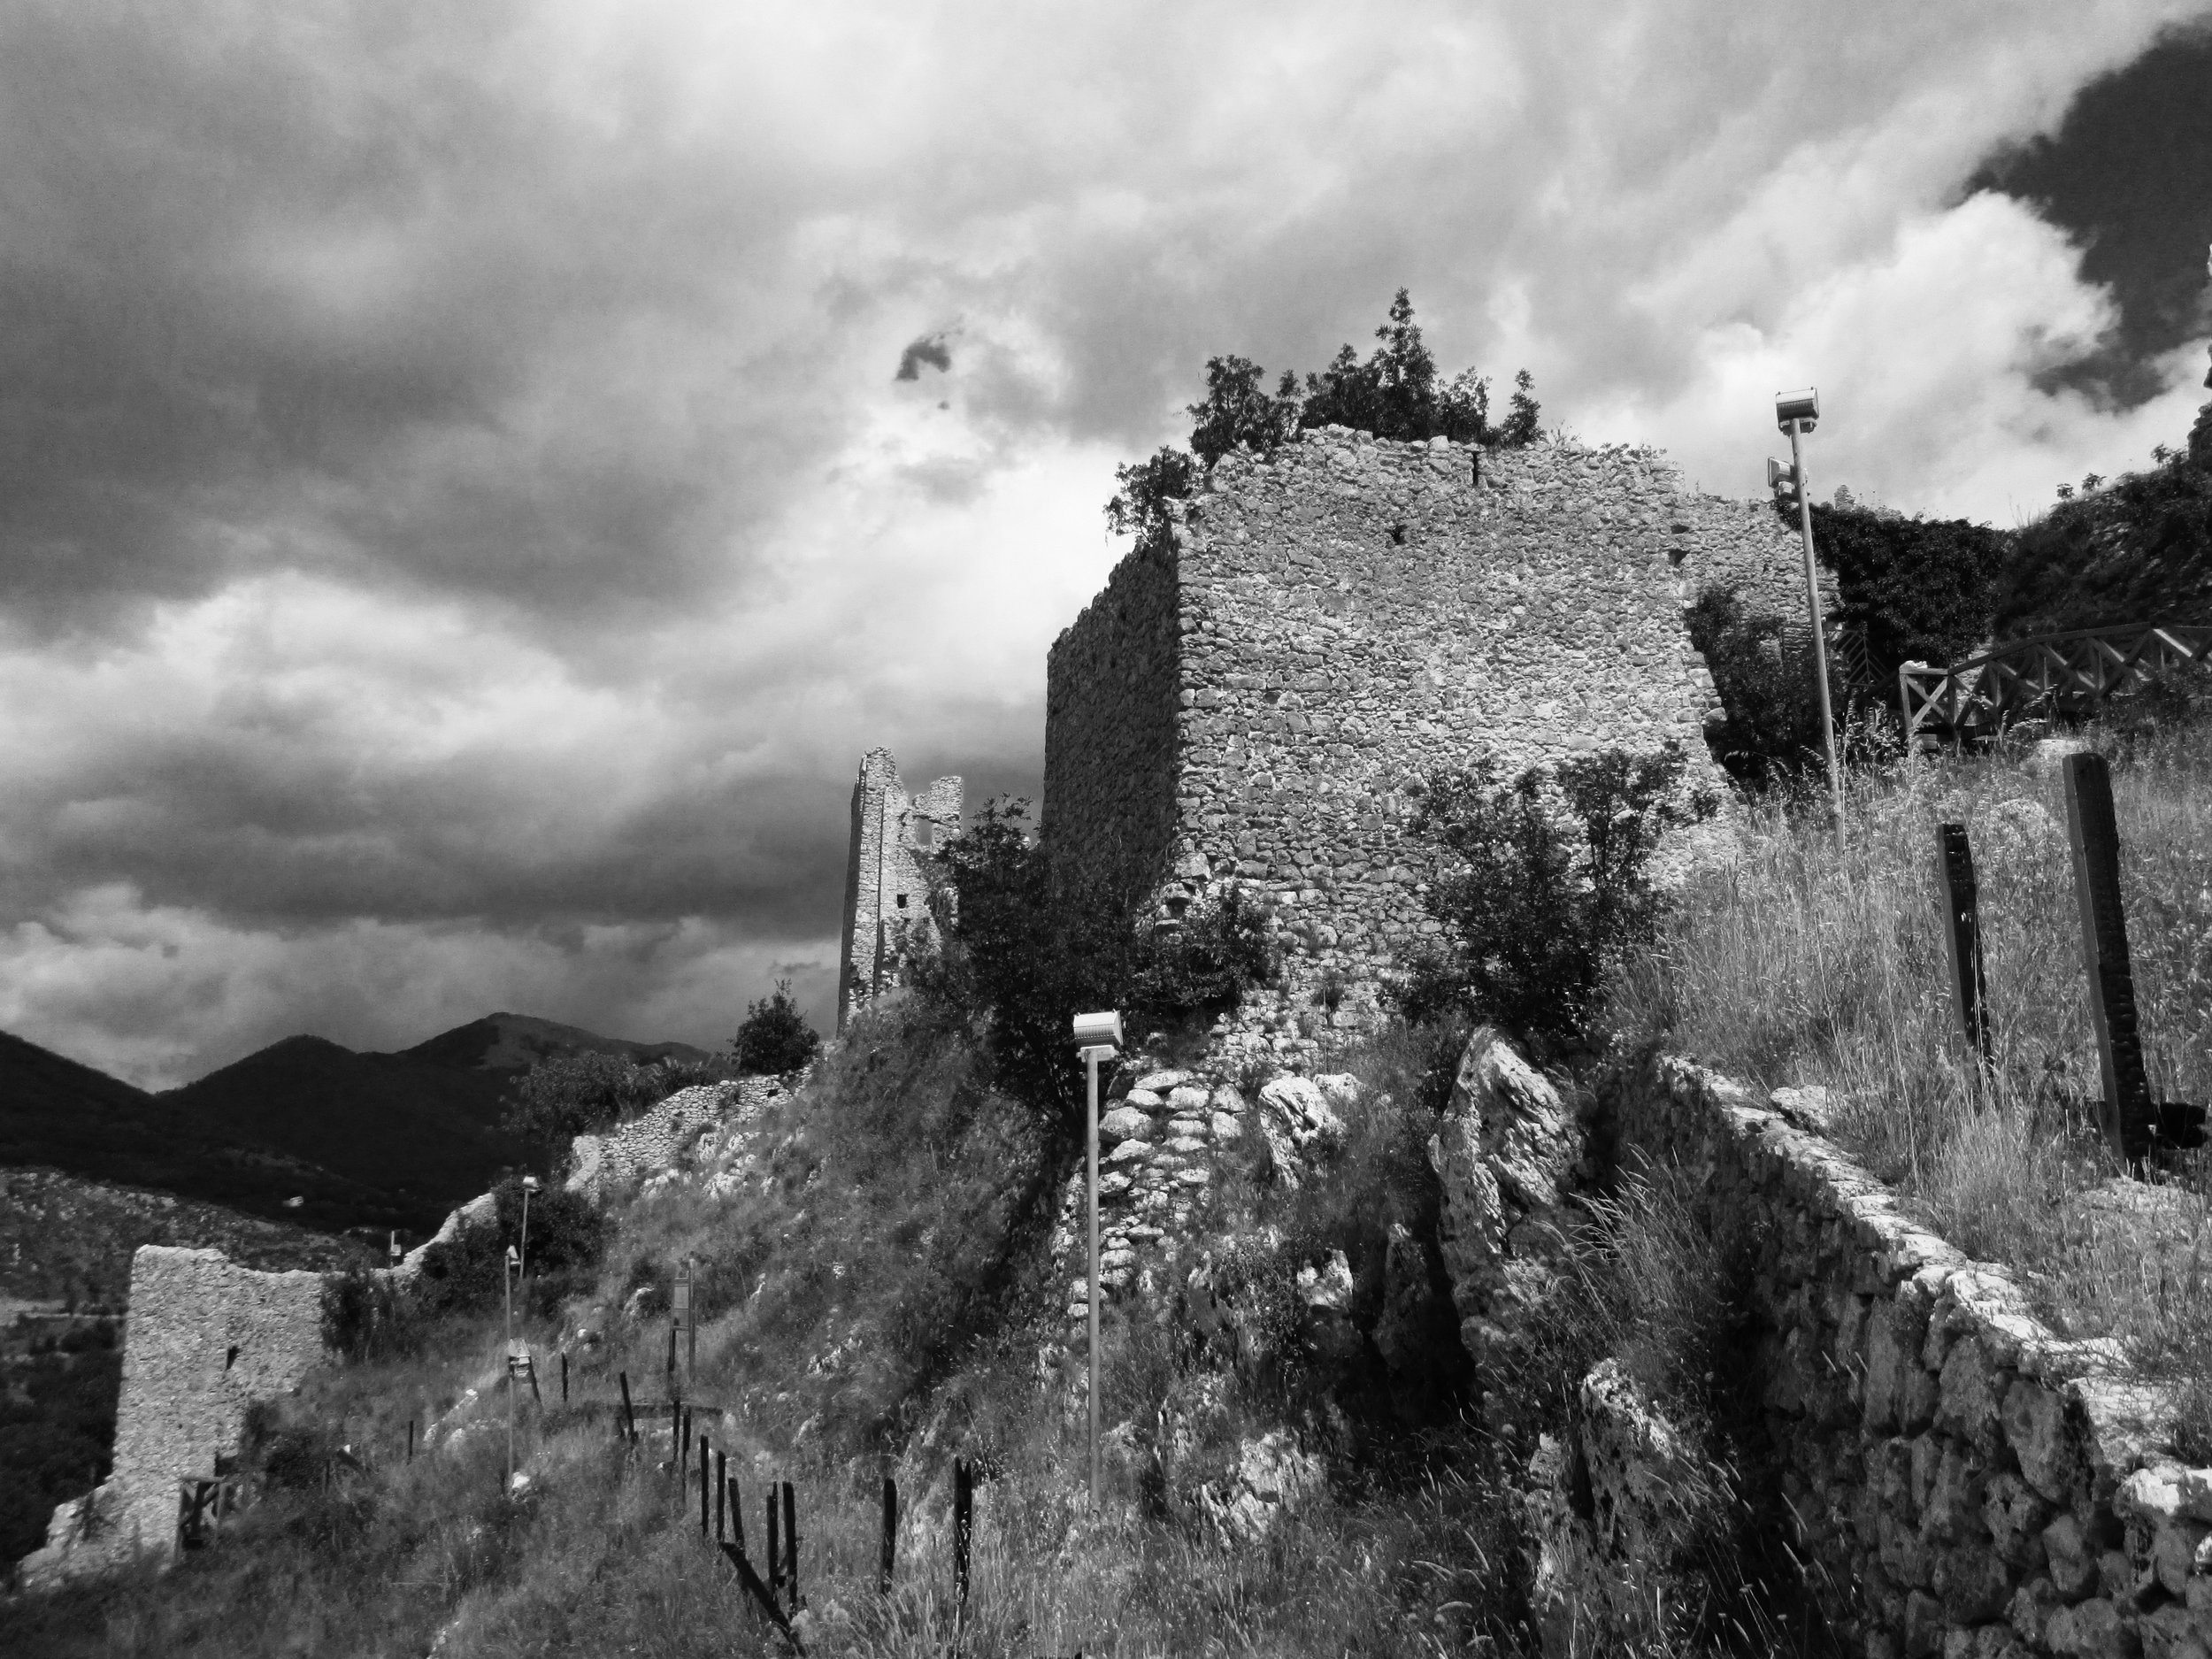 The ruins of St. Thomas' childhood home/castle (photo credit: Daniel dikman)